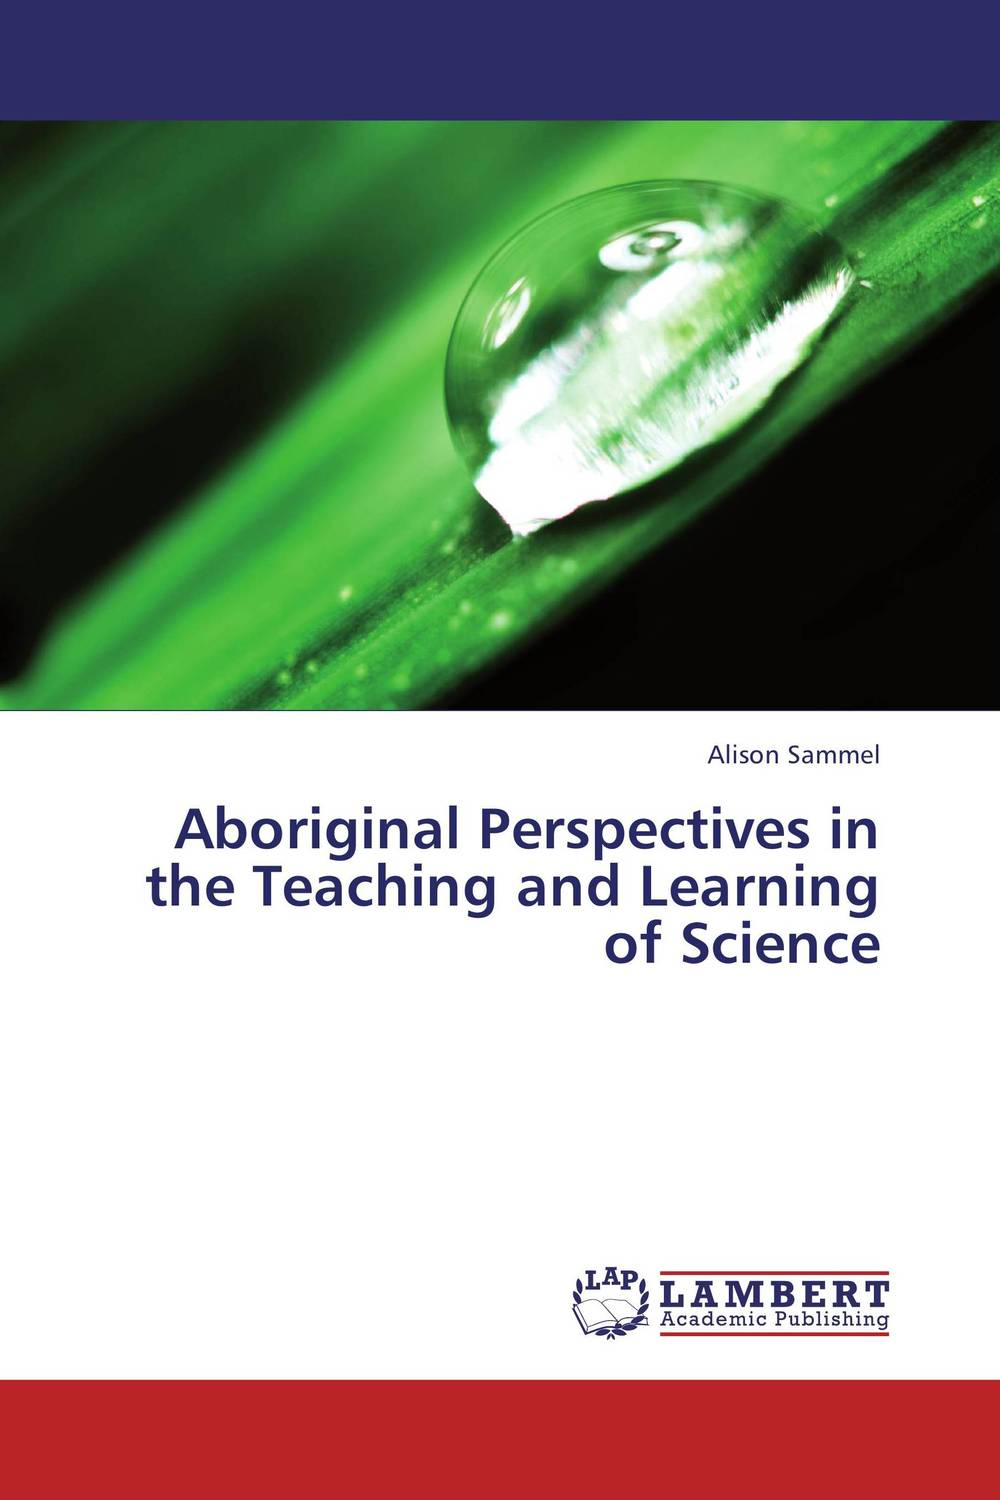 Aboriginal Perspectives in the Teaching and Learning of Science learning resources набор пробей